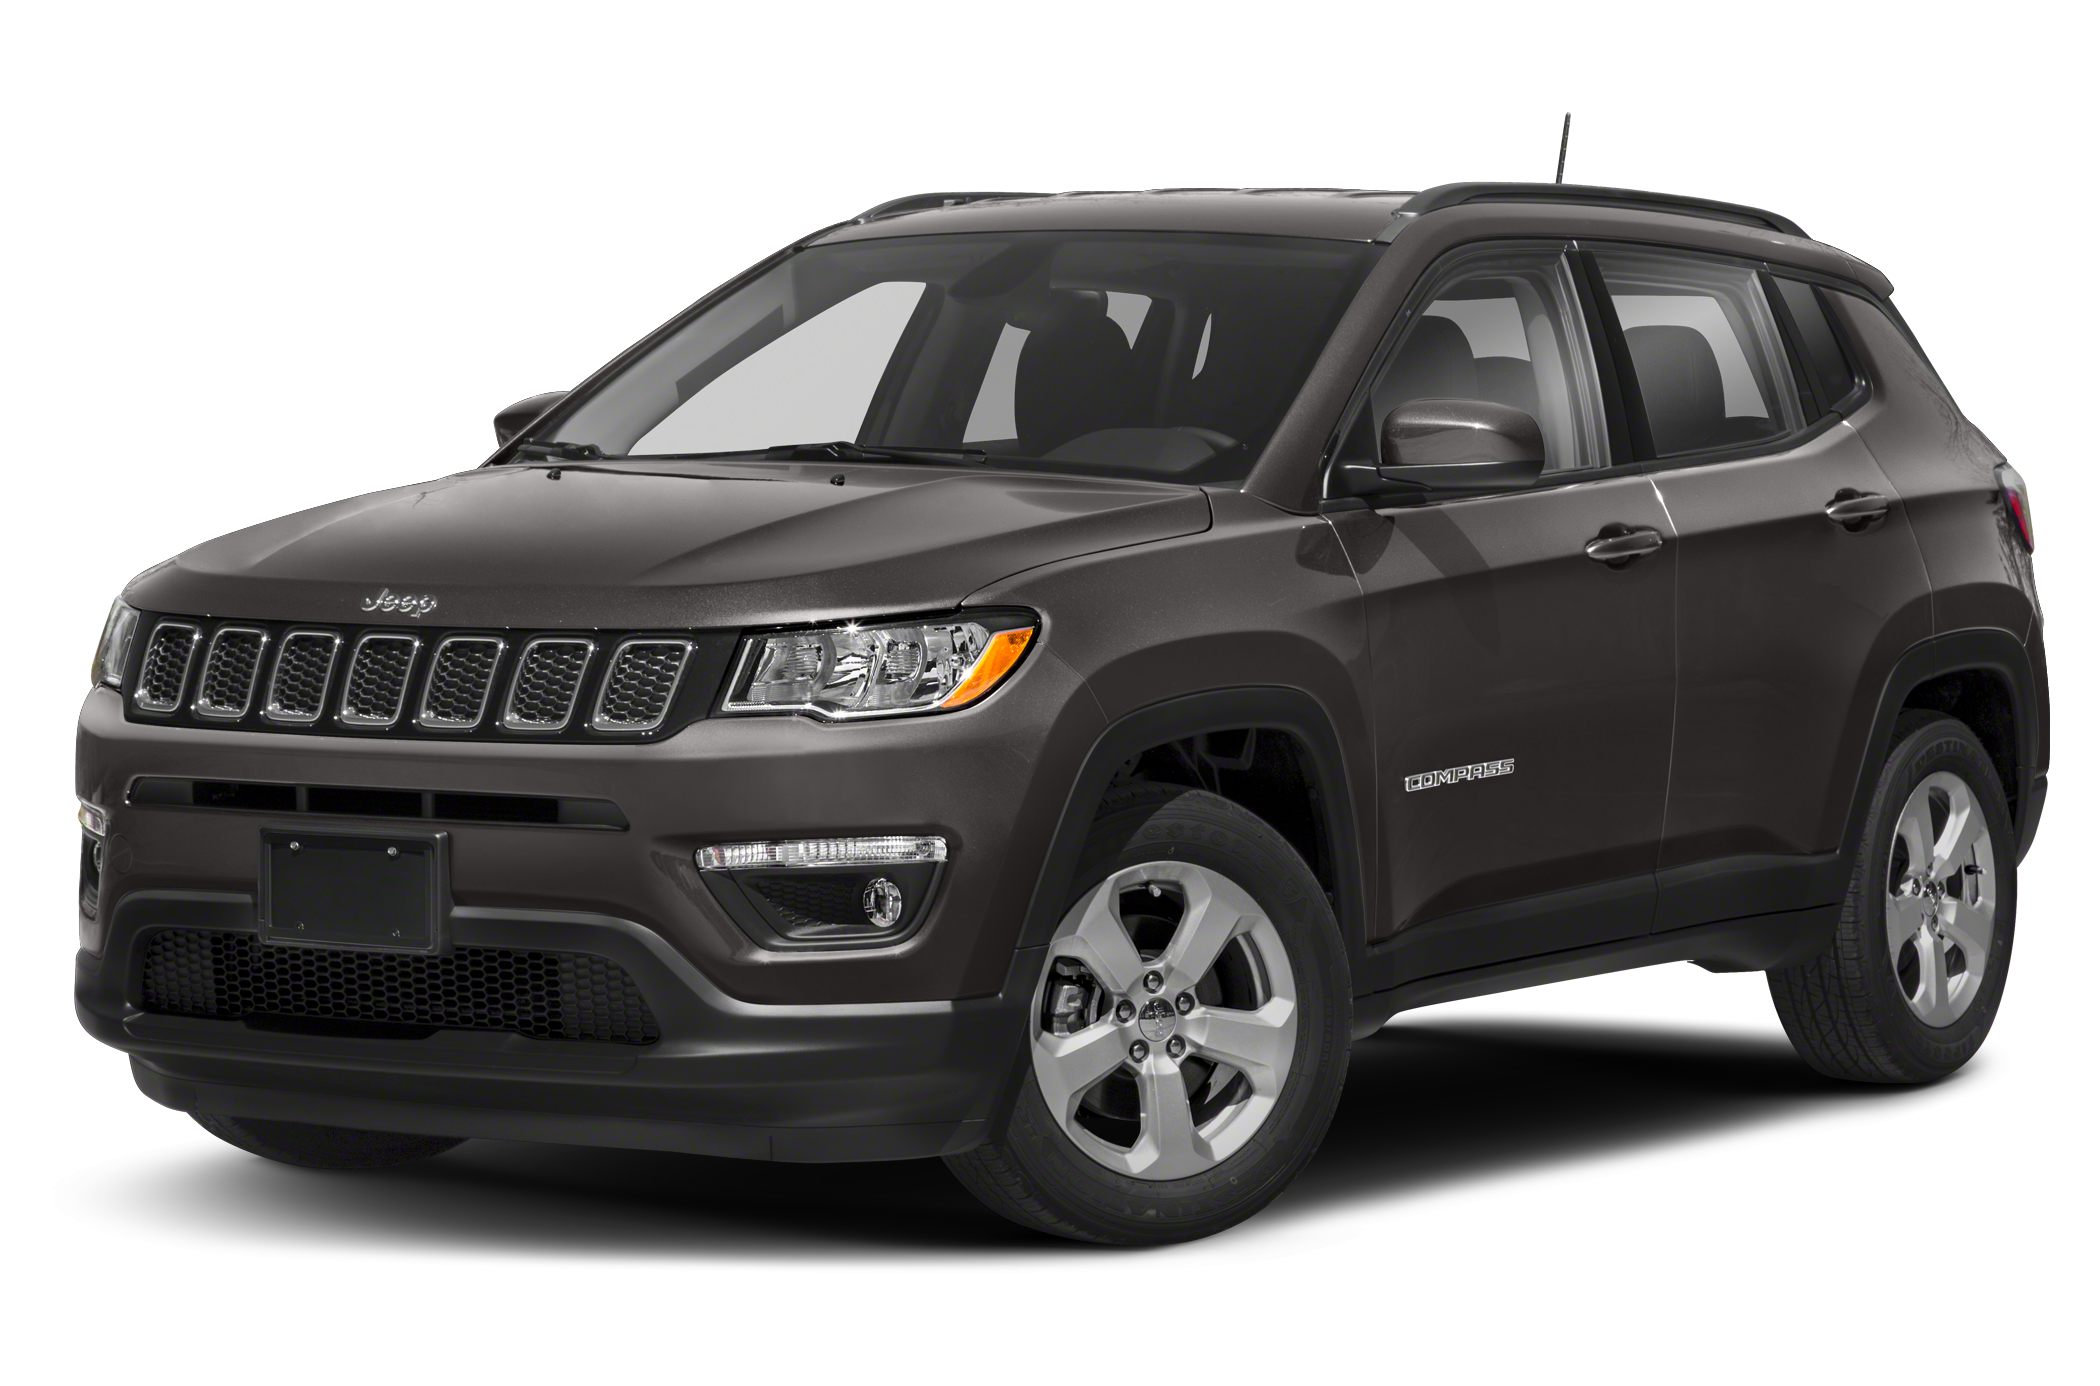 2019 Jeep Compass Crash Test Ratings